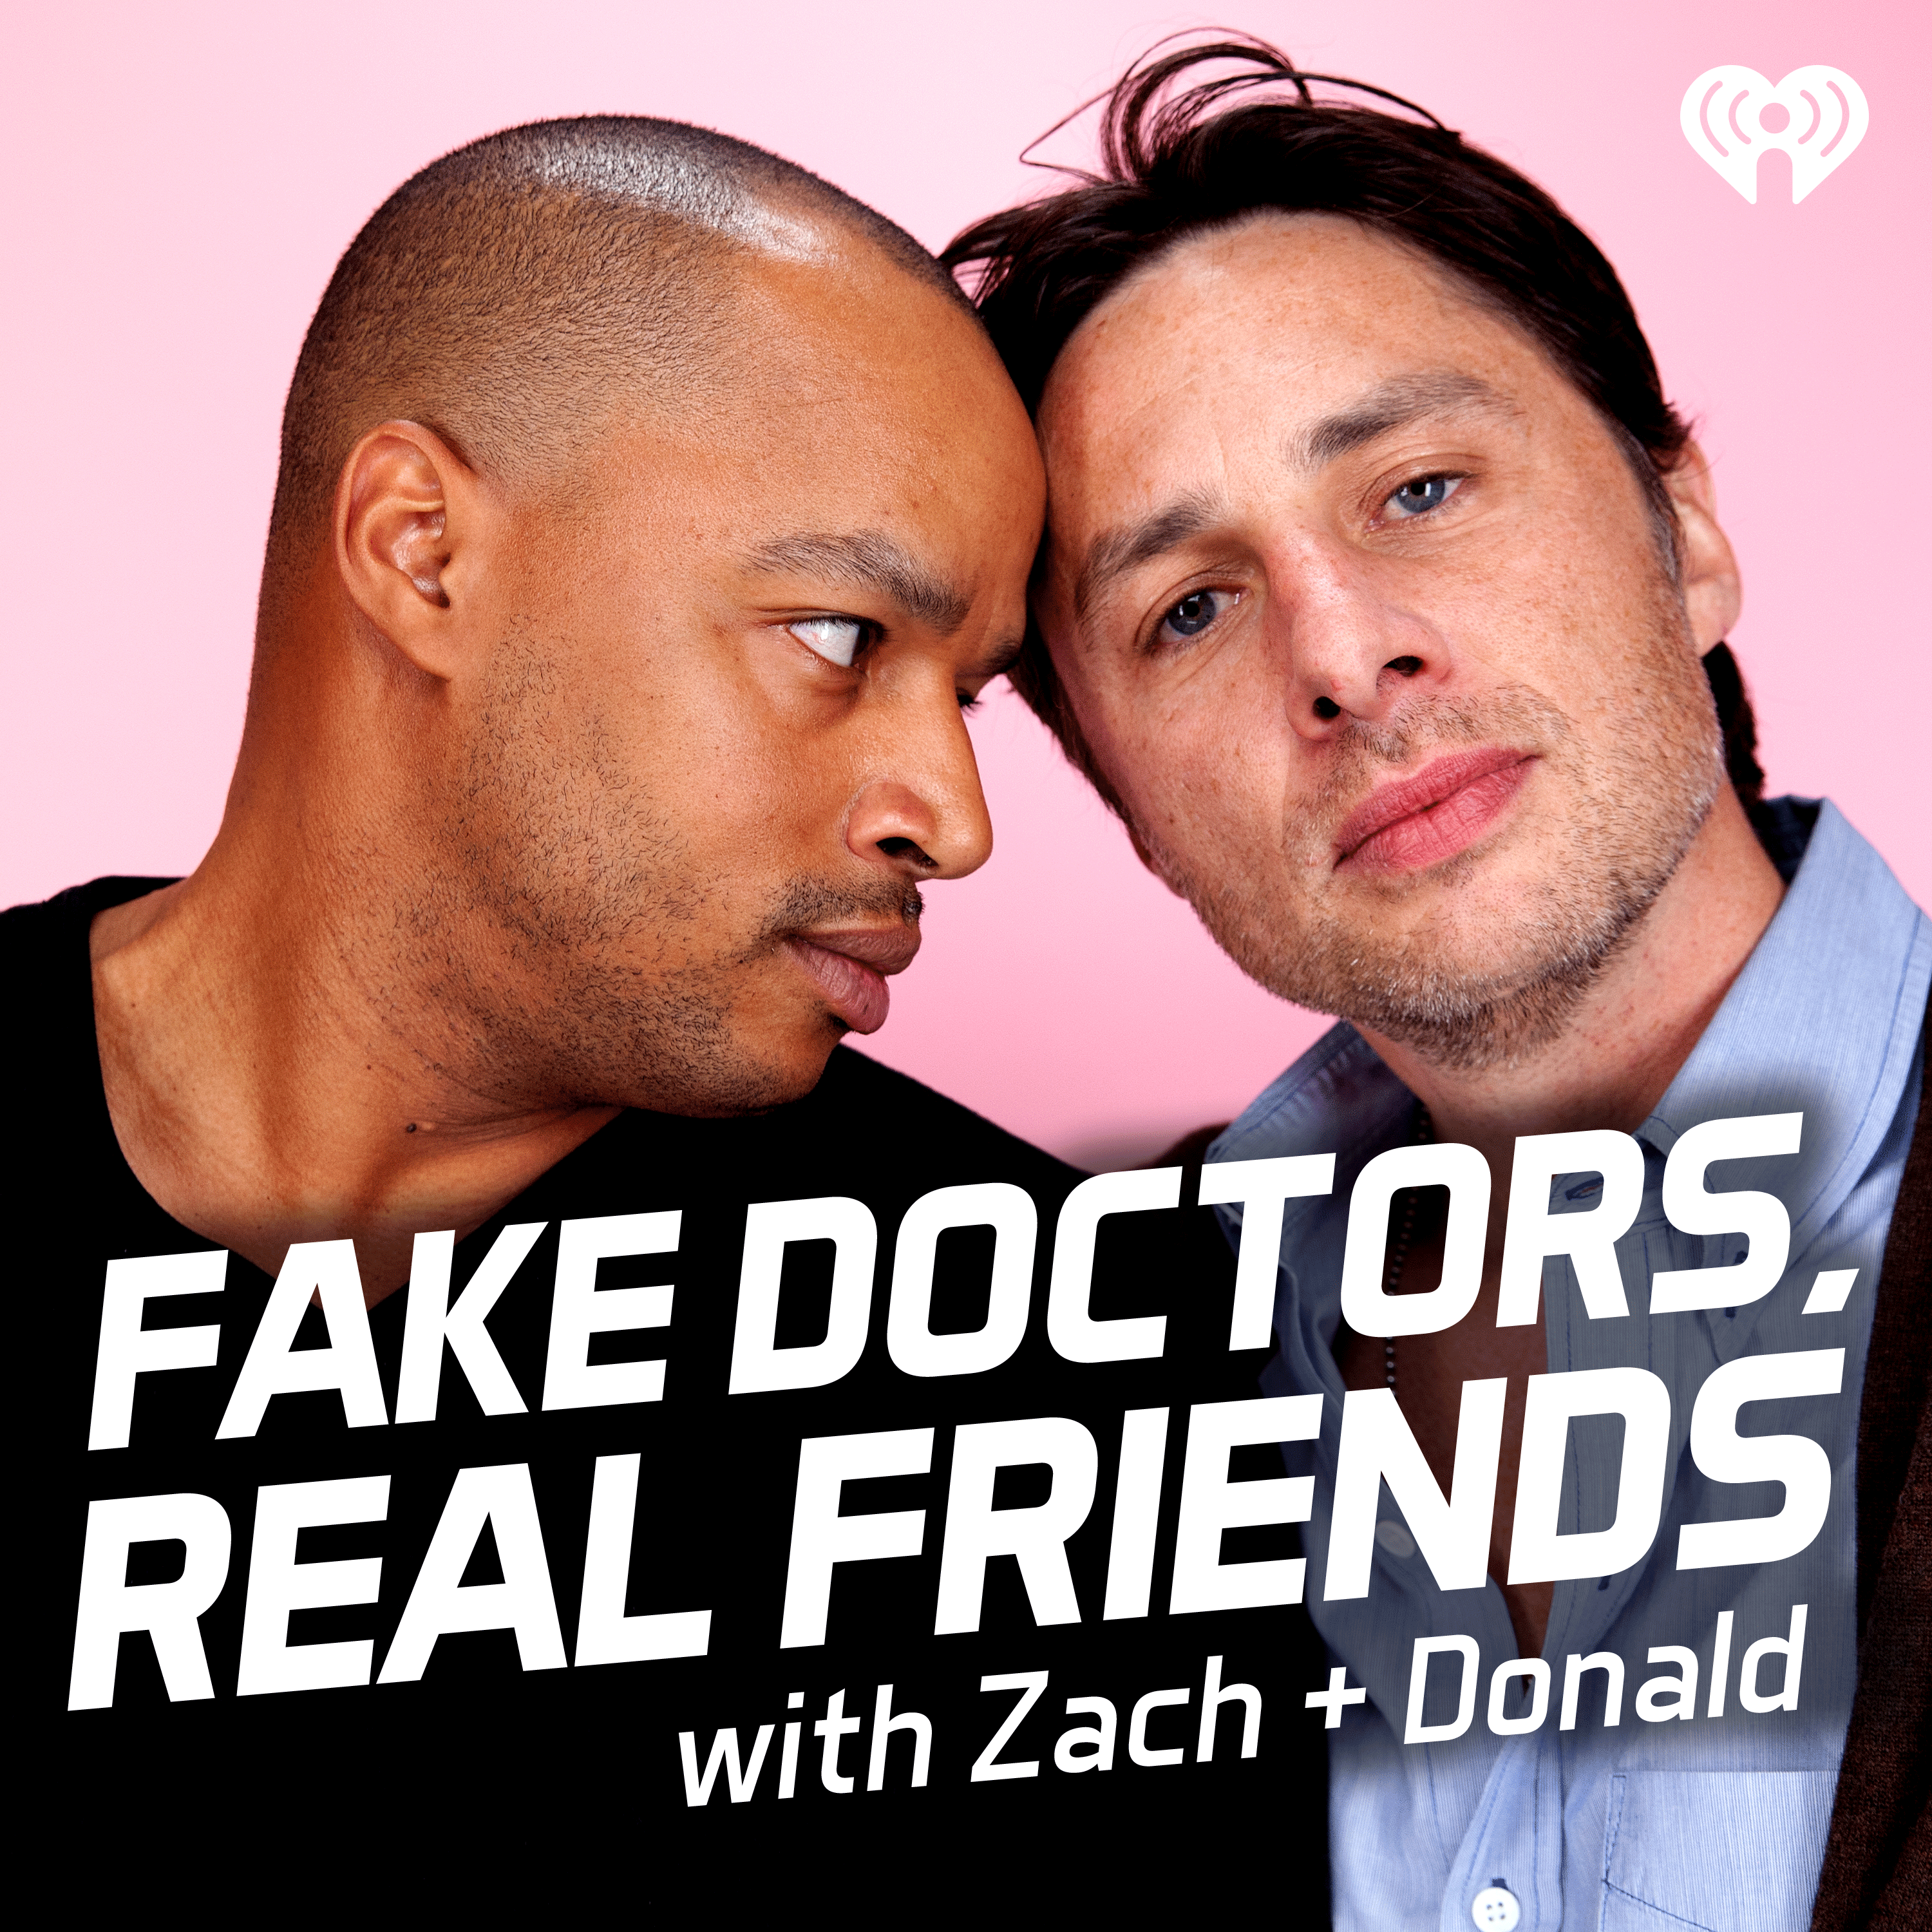 Fake Doctors, Real Friends with Zach and Donald podcast